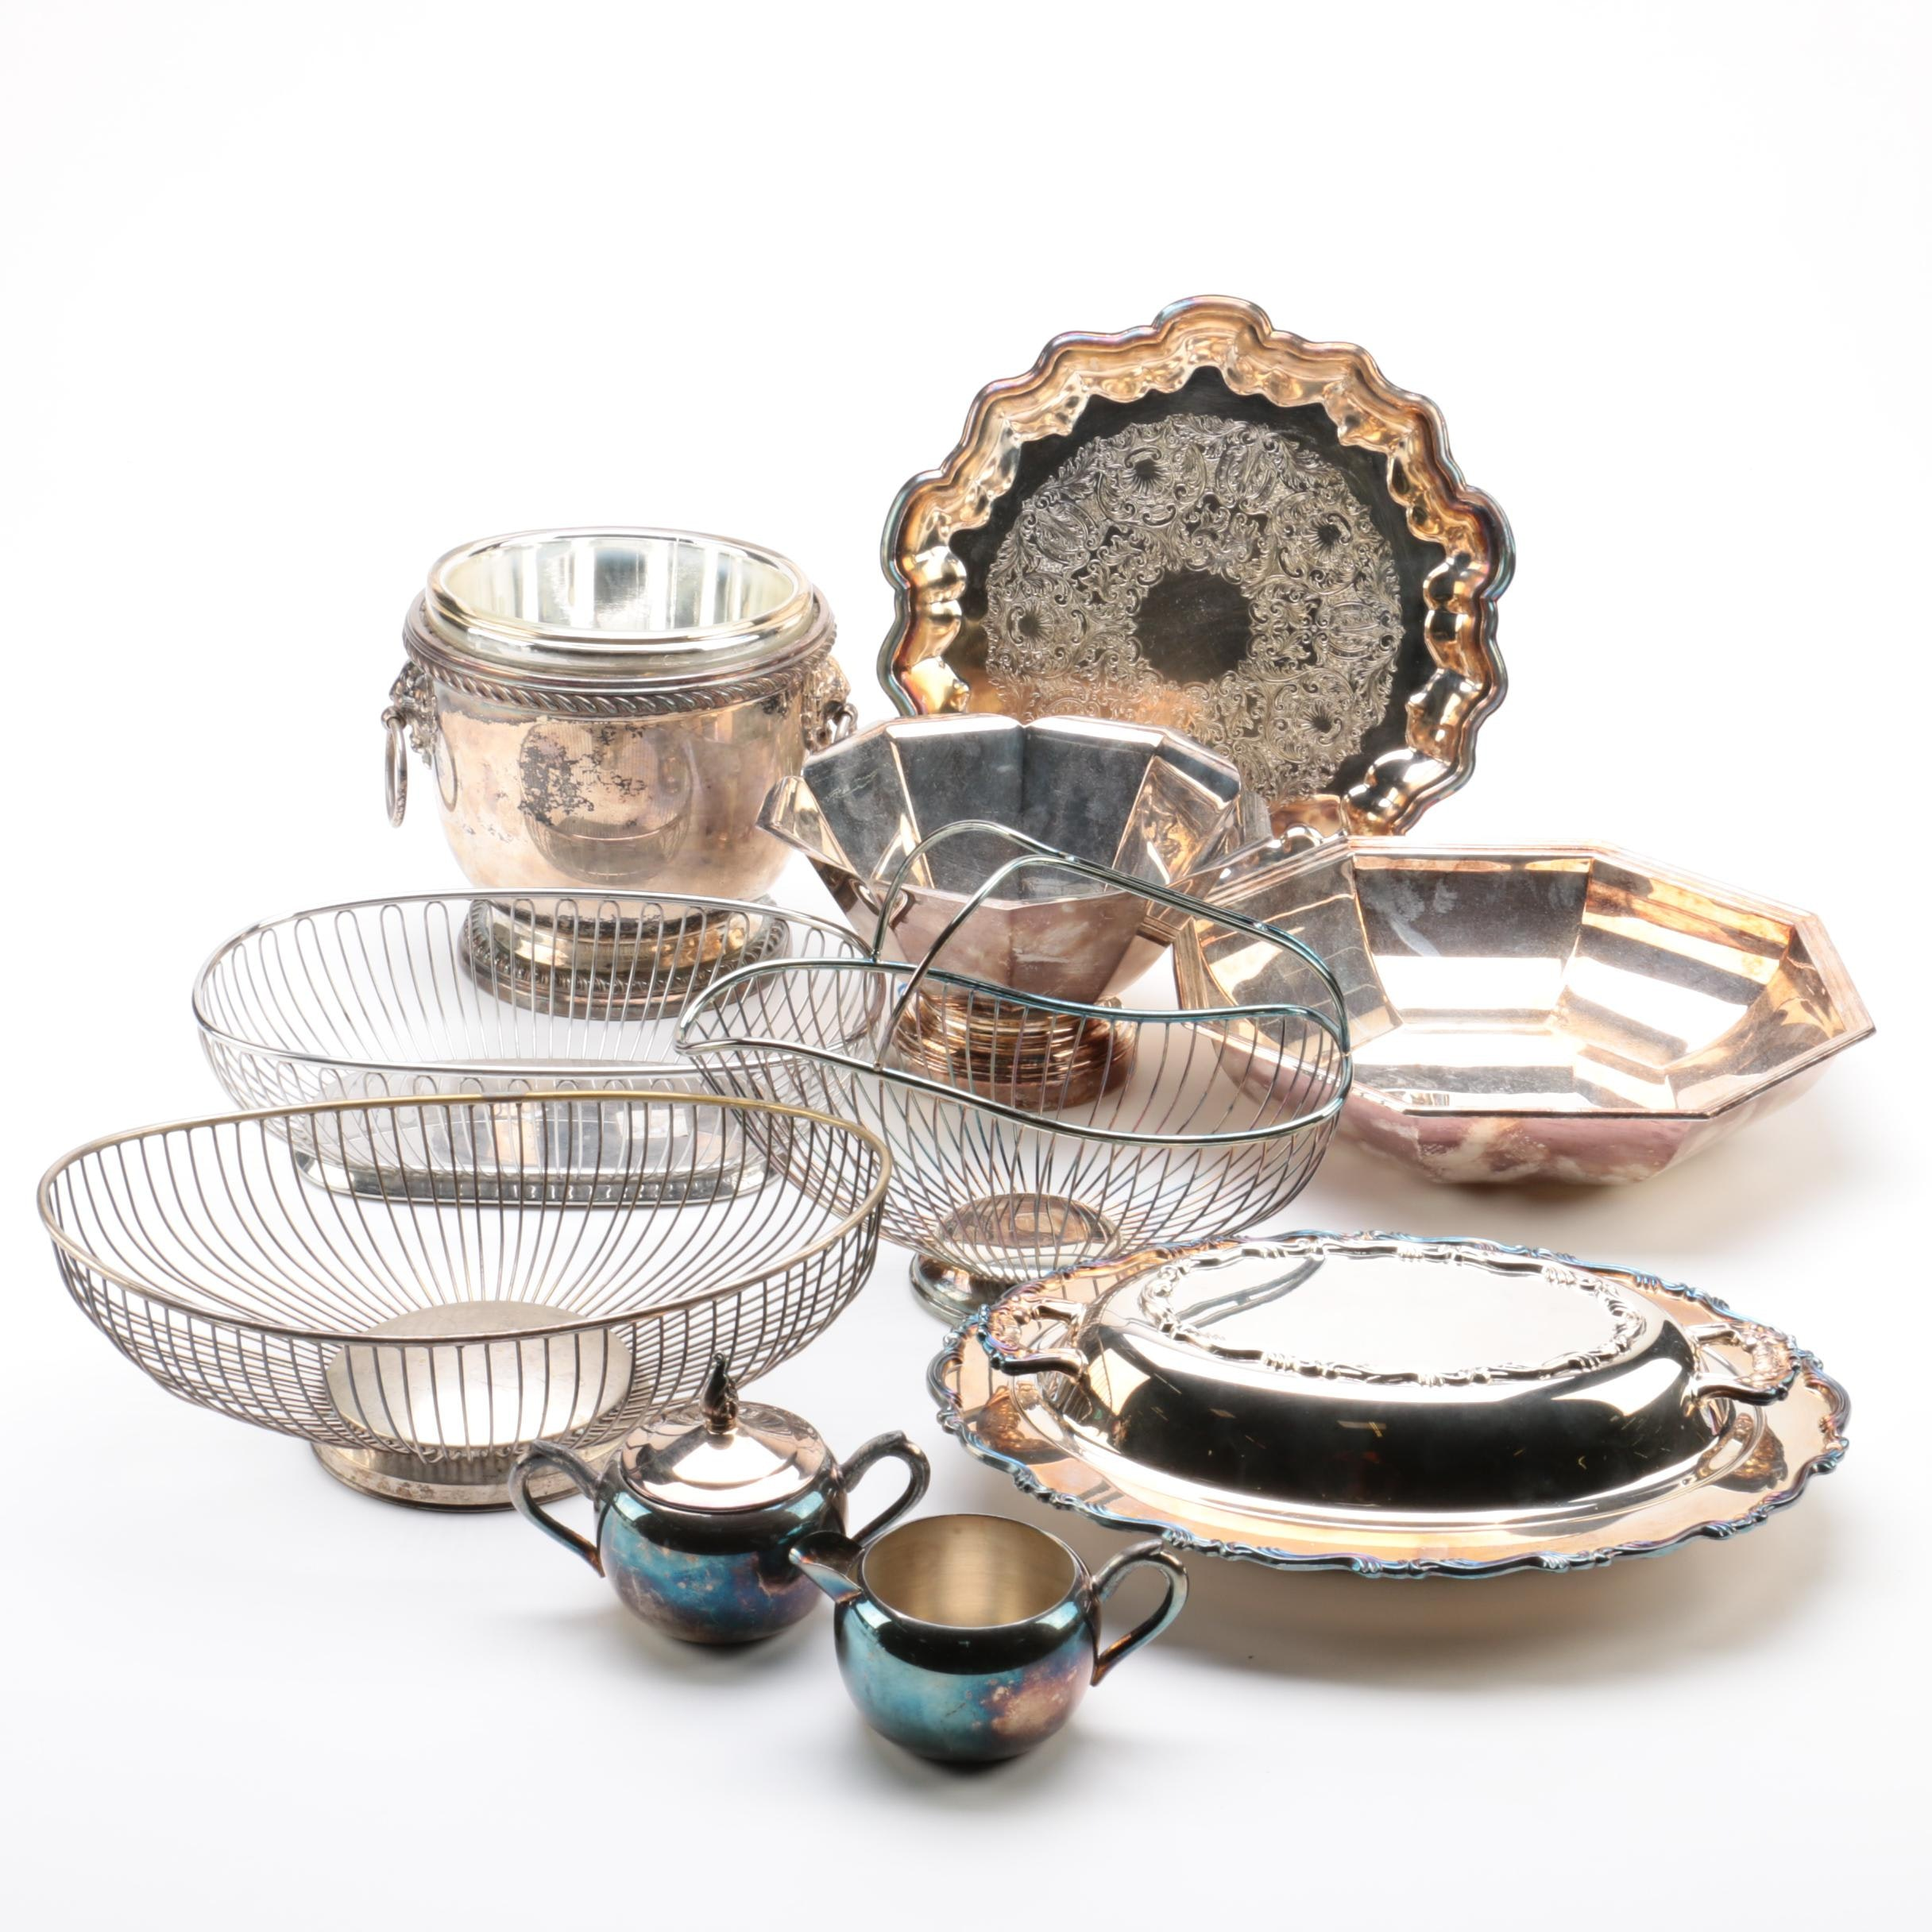 Poole Urn Ice Bucket and Other Silver Plate Serveware